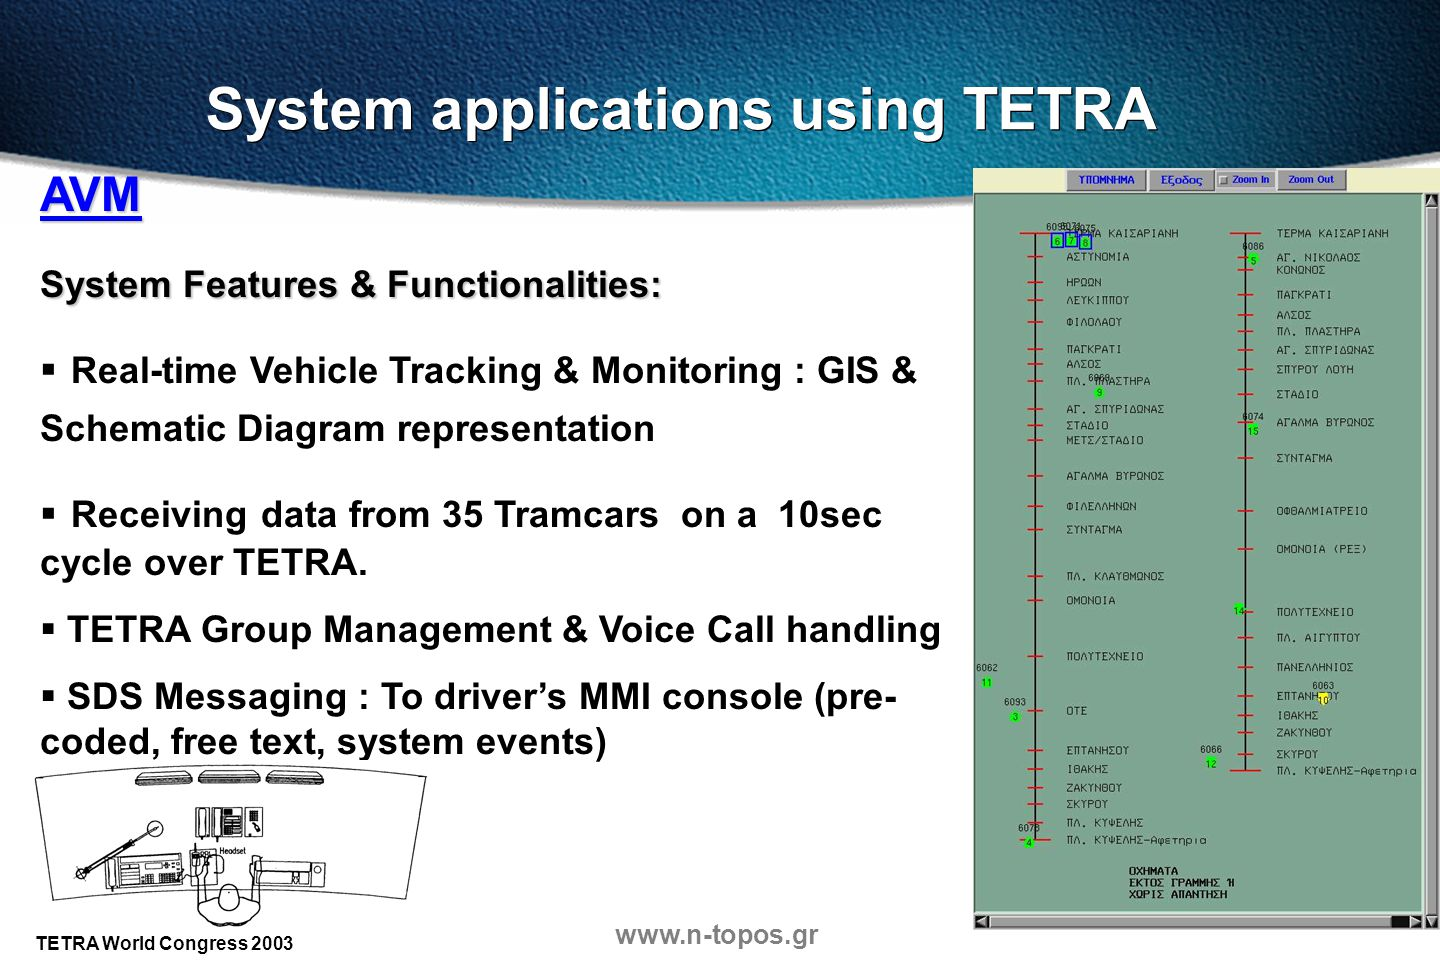 System applications using TETRA